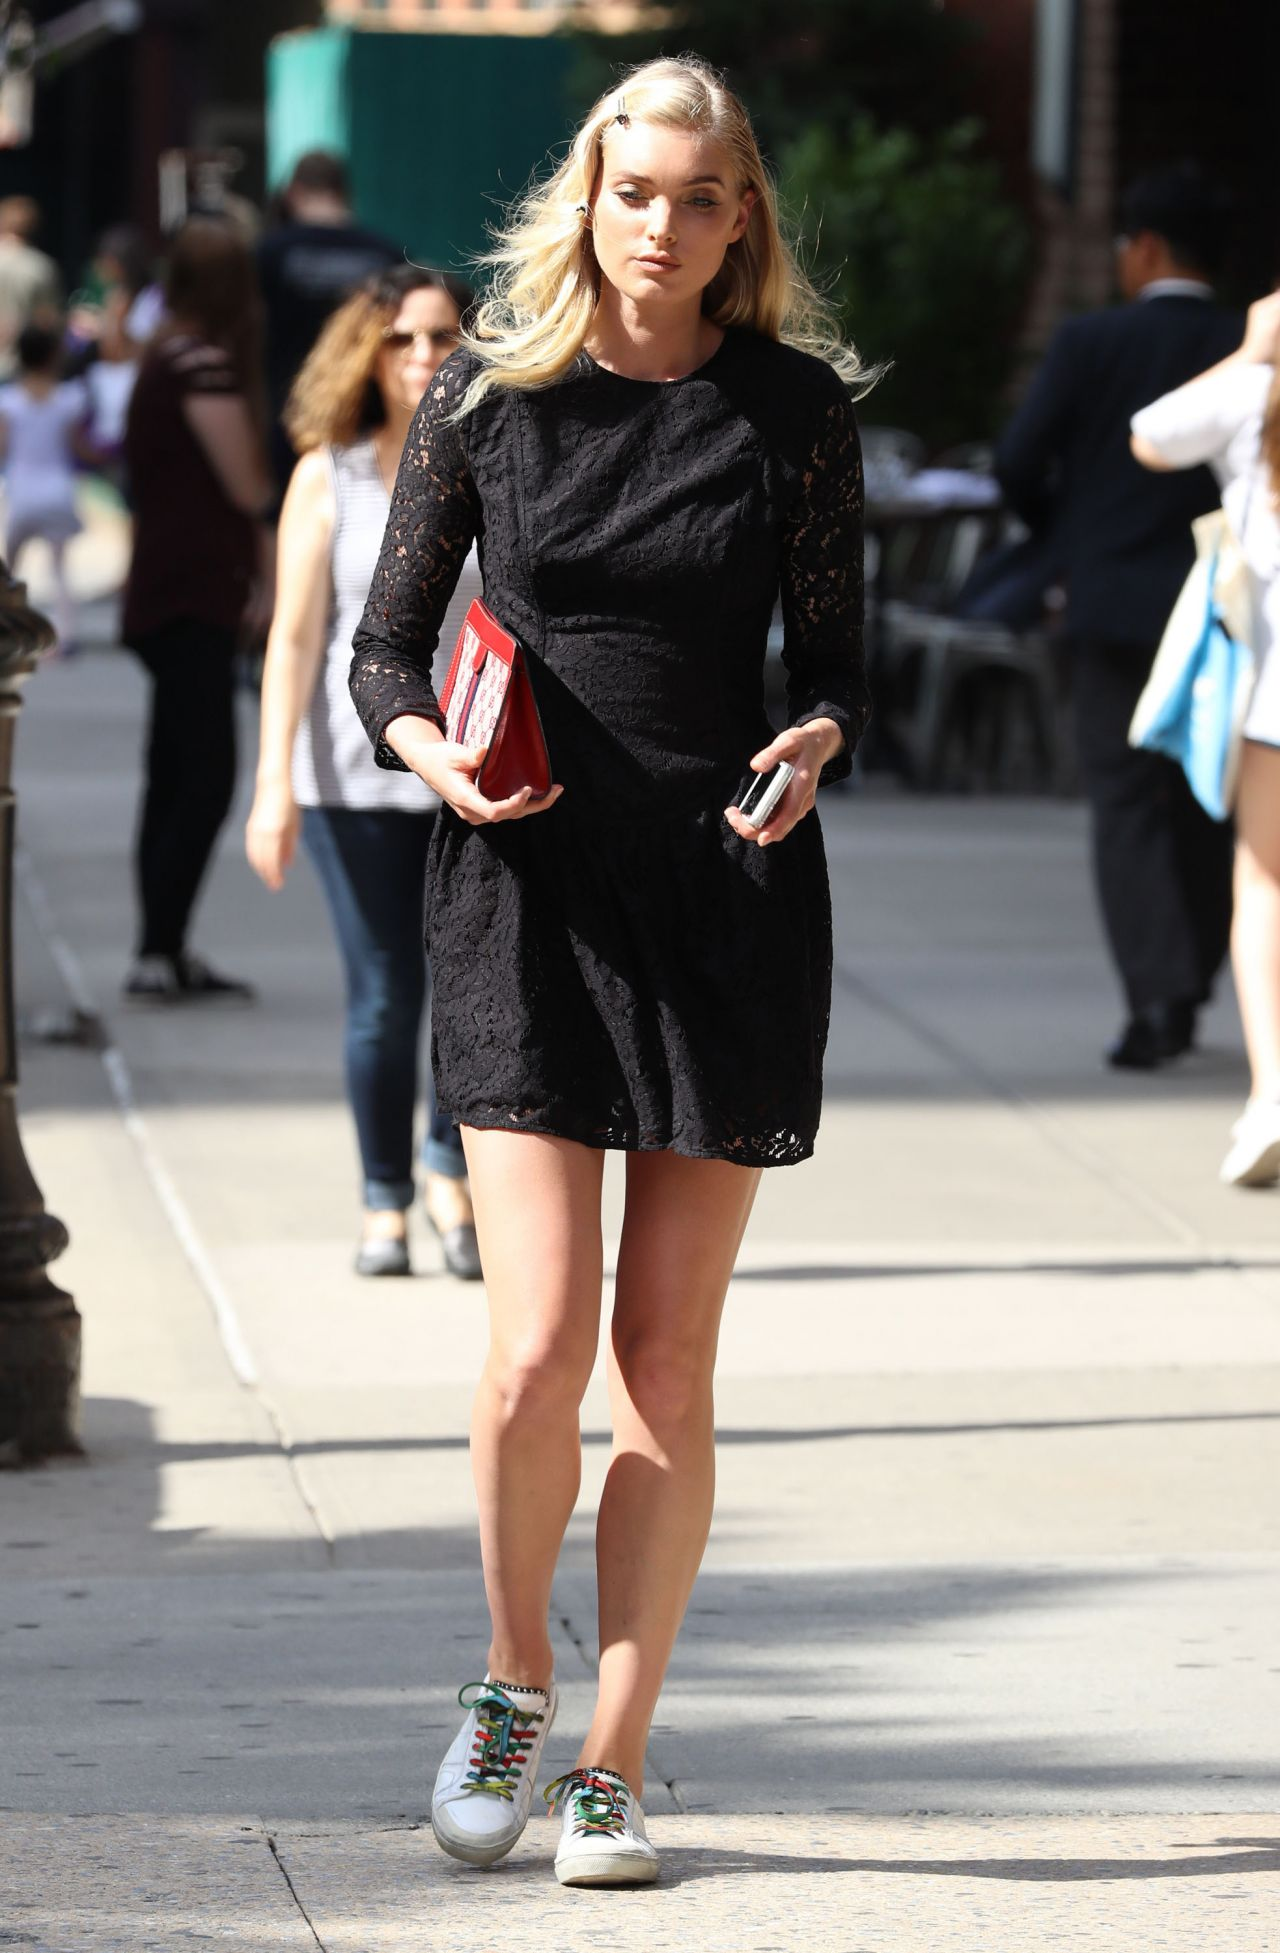 Elsa Hosk In Black Mini Dress Out New York City 6 2016